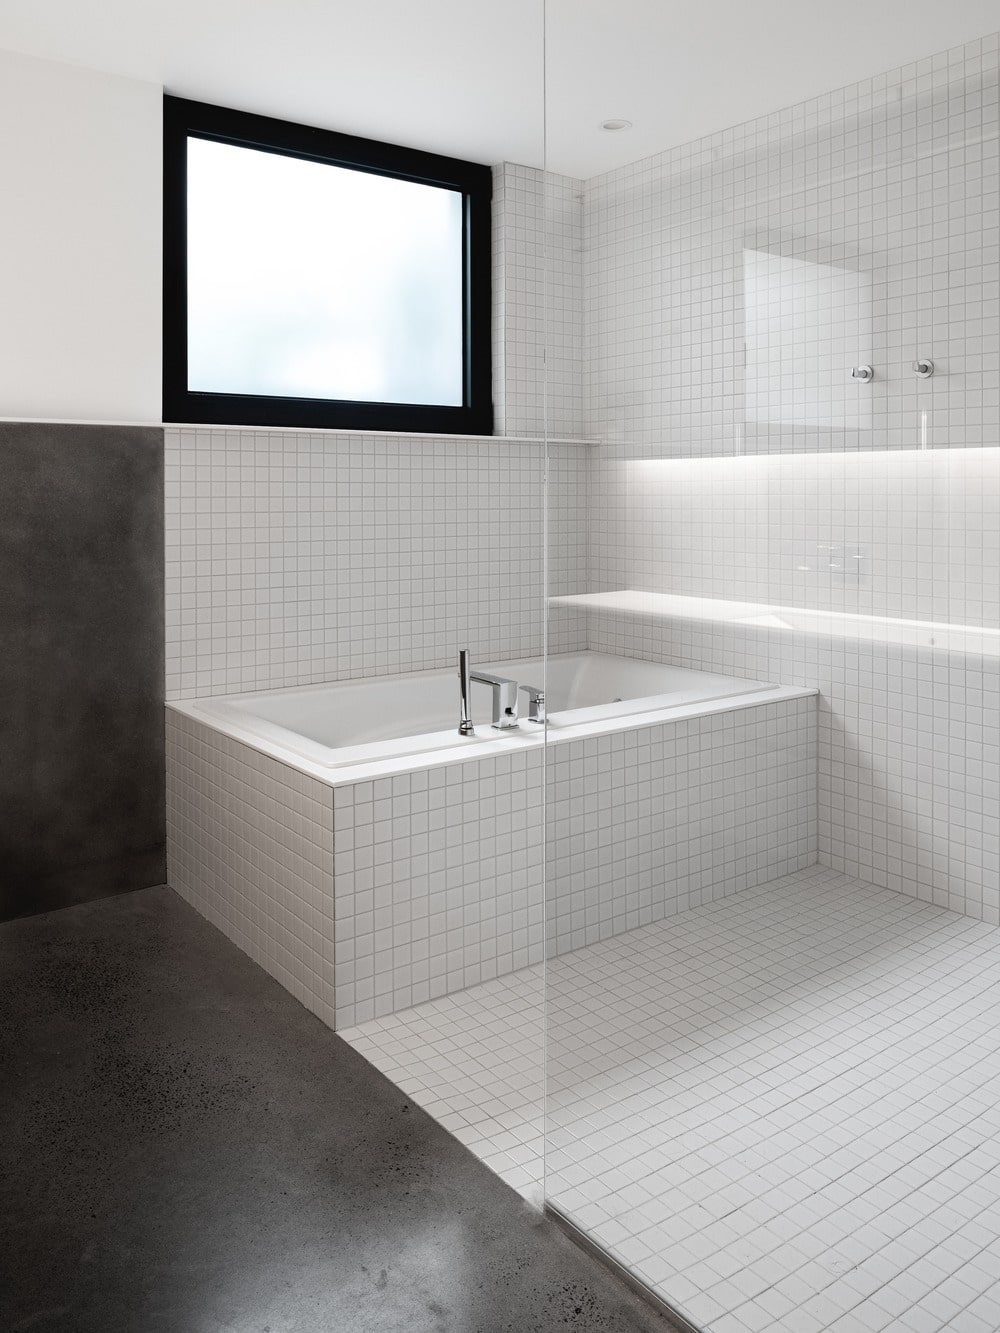 The bathtub is inside a glass-enclosed wet area.